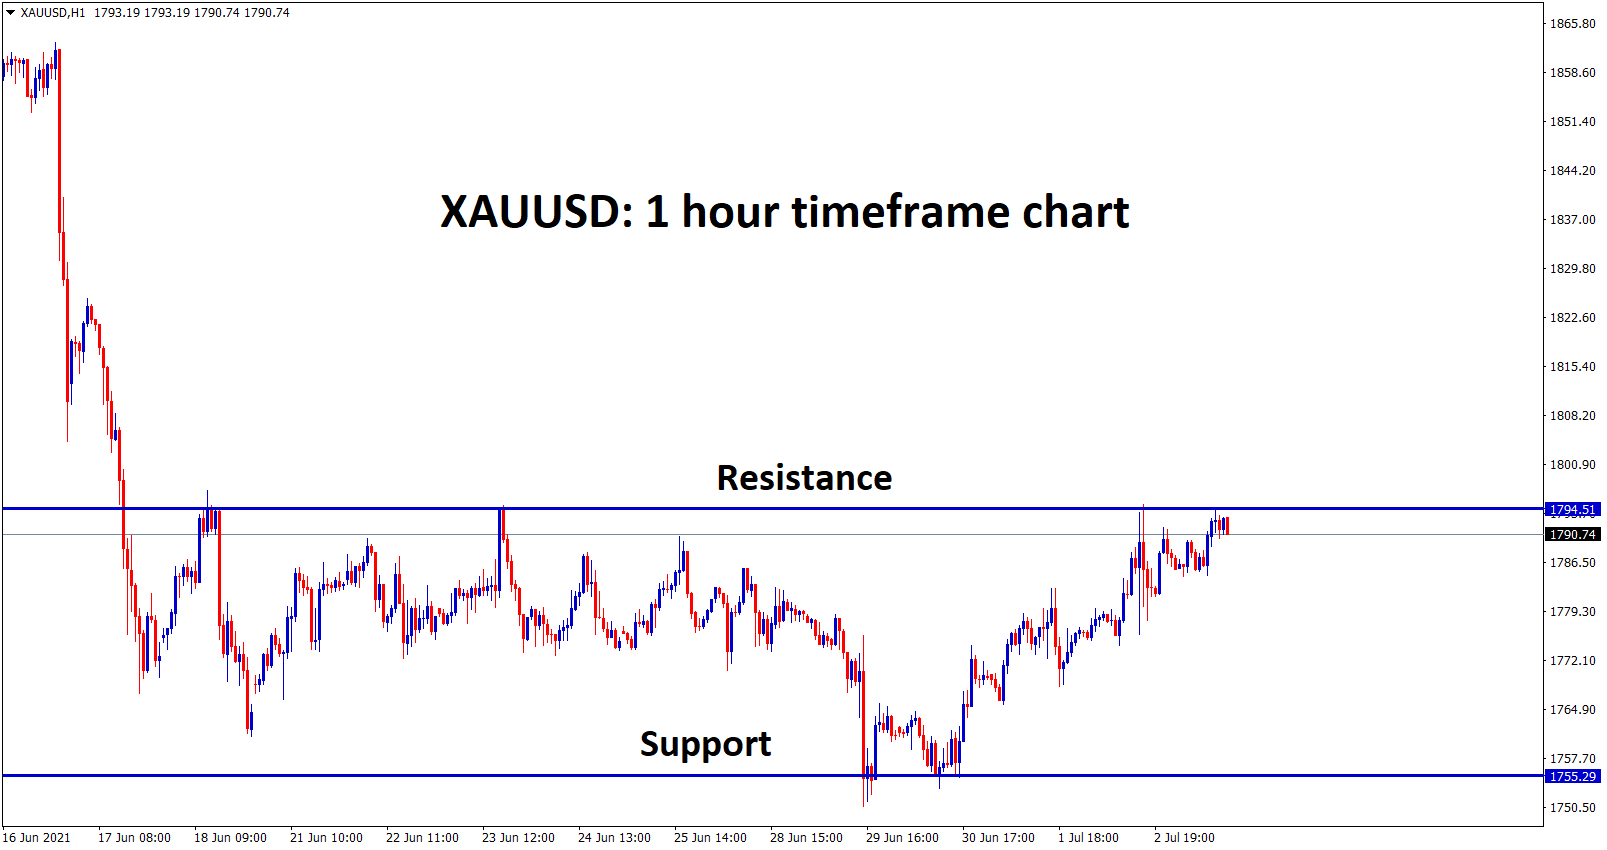 Gold is still moving betweent he resistance and support level